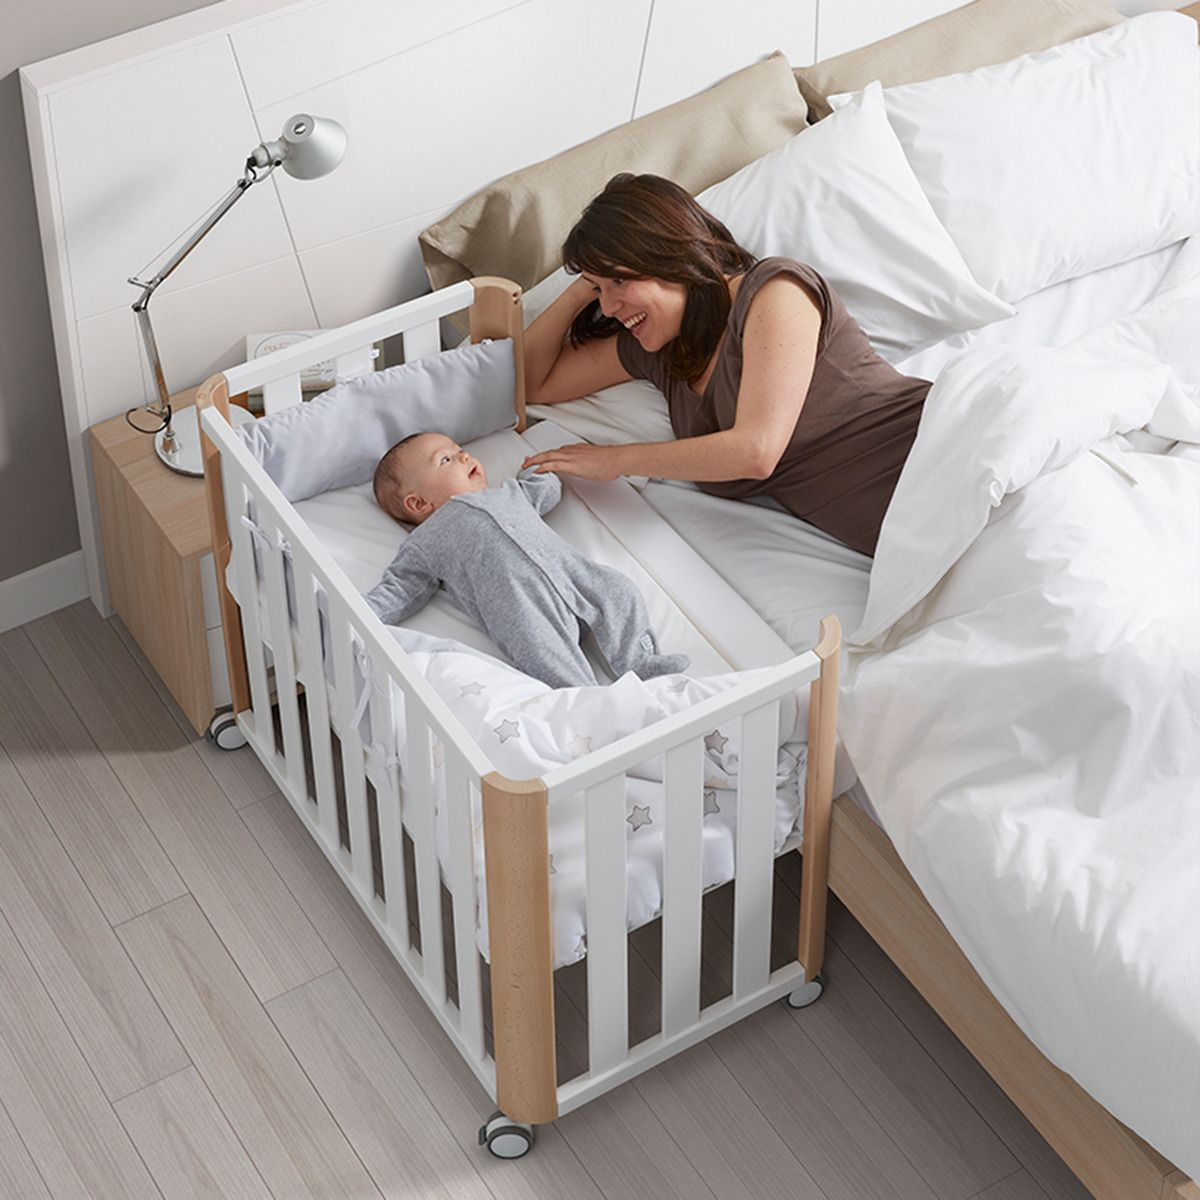 gran descuento 0f407 38862 Your Baby's Sleep Cheat Sheet | Embarazo | Dormitorio bebe ...